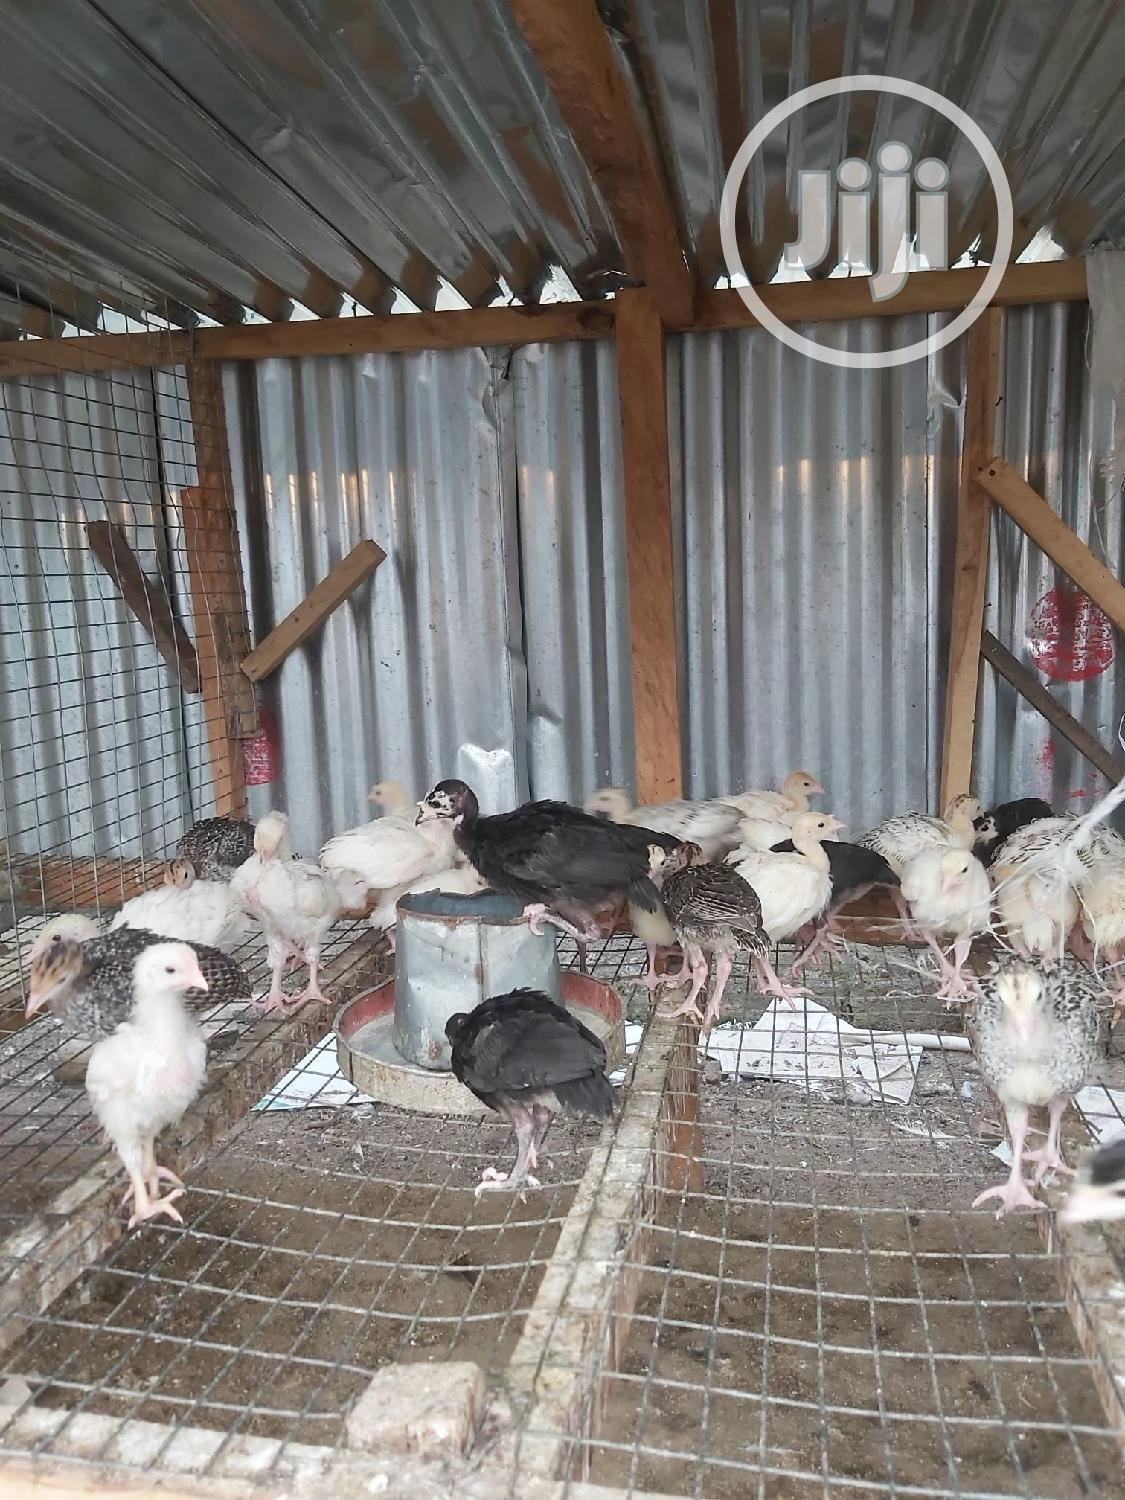 Archive: Noiler And Turkeys (Day Old, Growers And Adult)